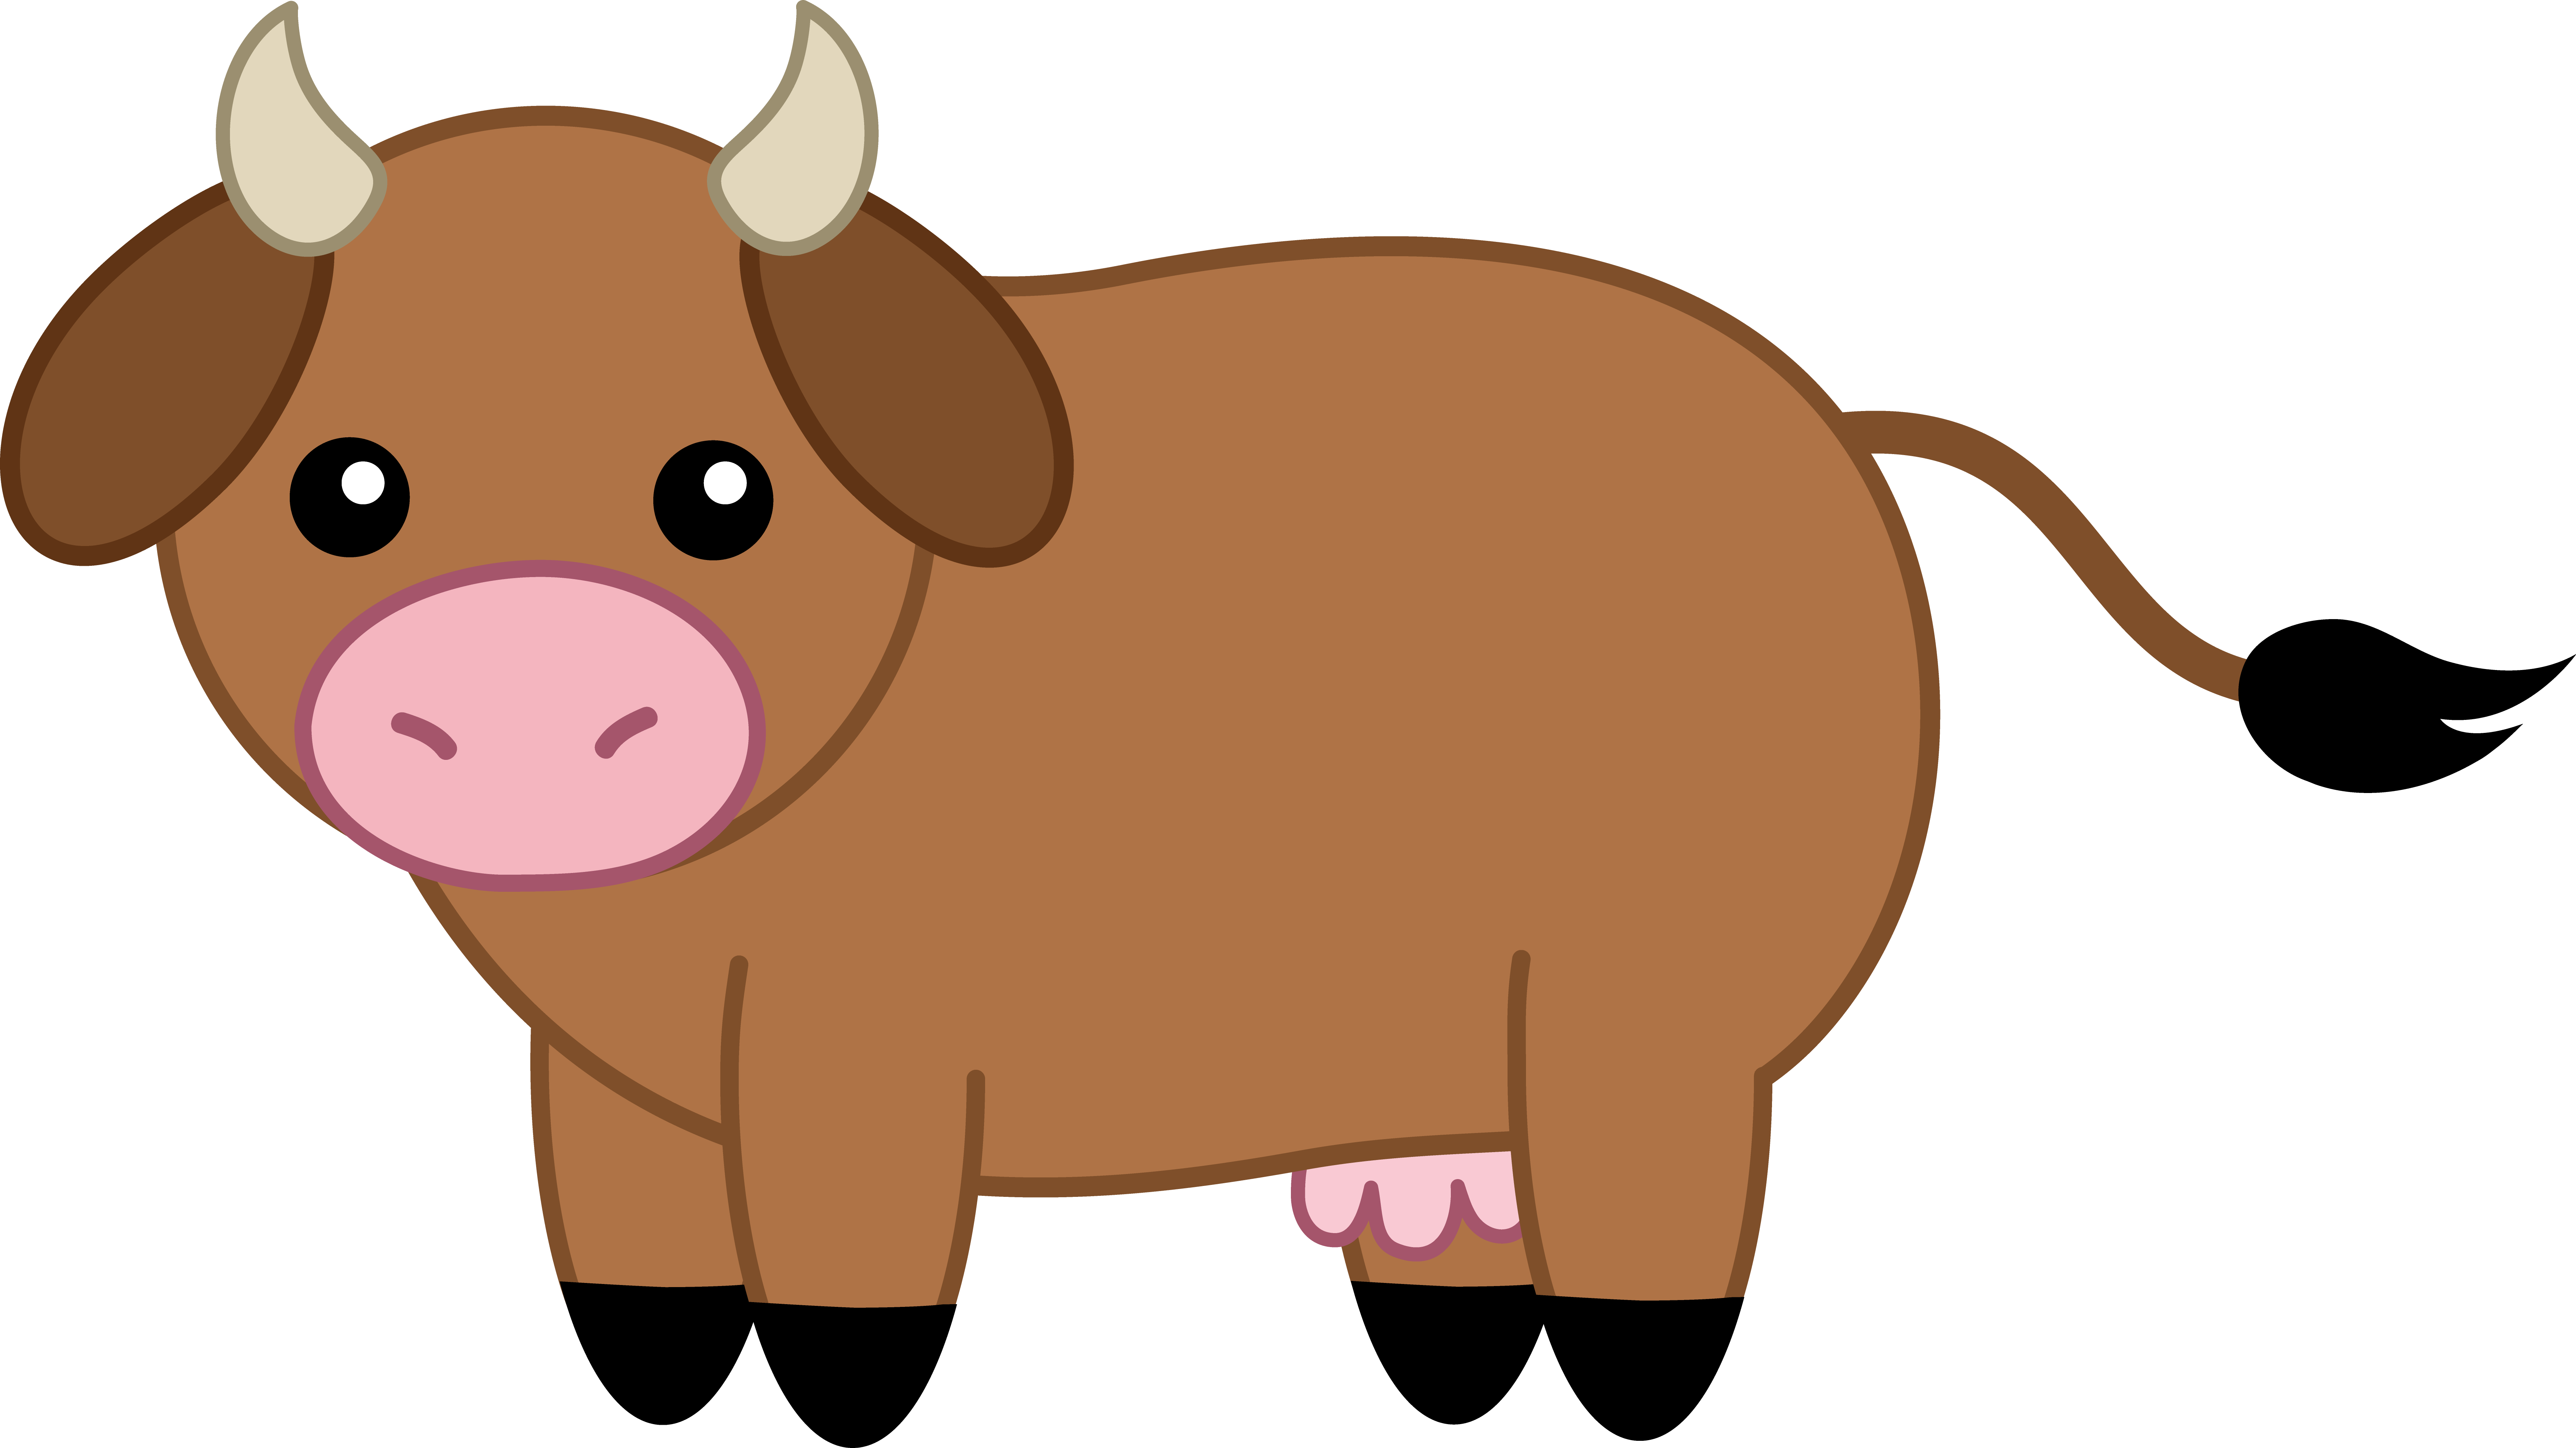 Cattle clipart #1, Download drawings